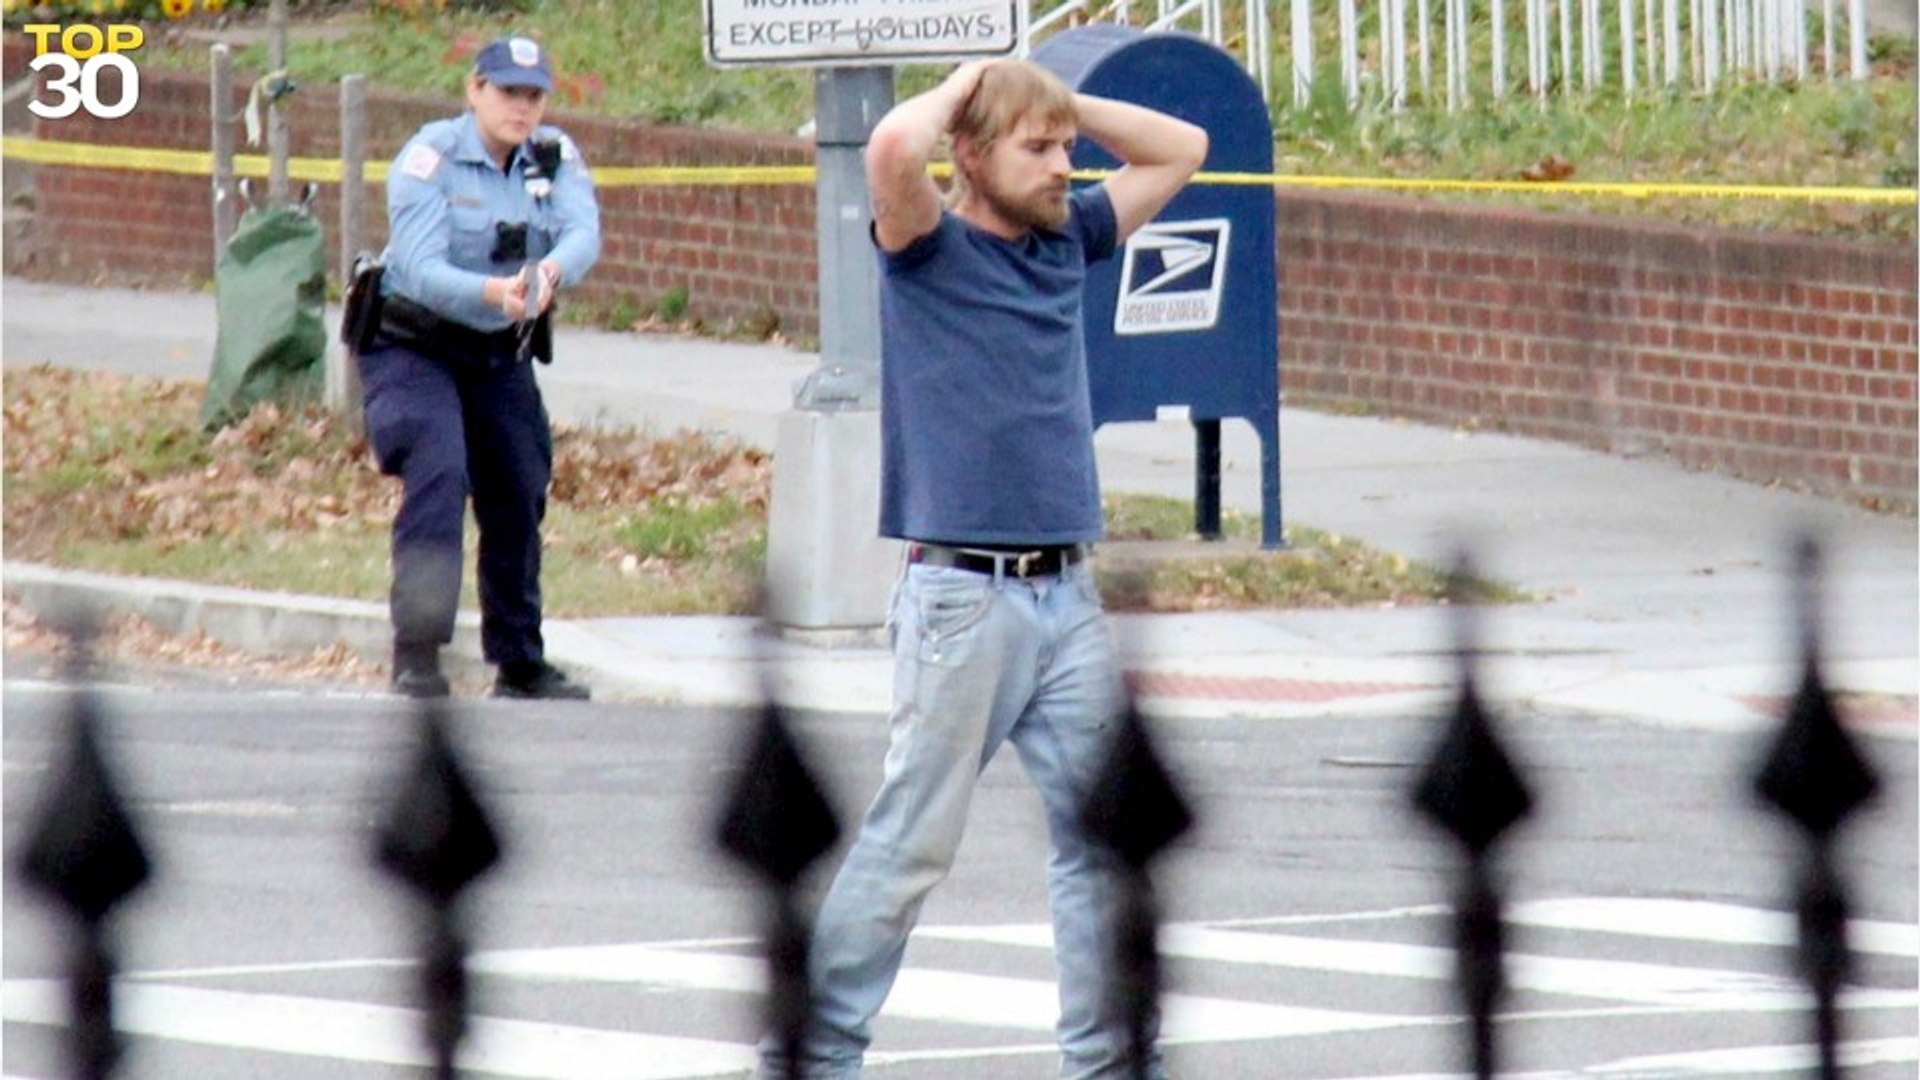 Police: Suspect 'investigating' conspiracy theory arrested after firing shot inside DC piz